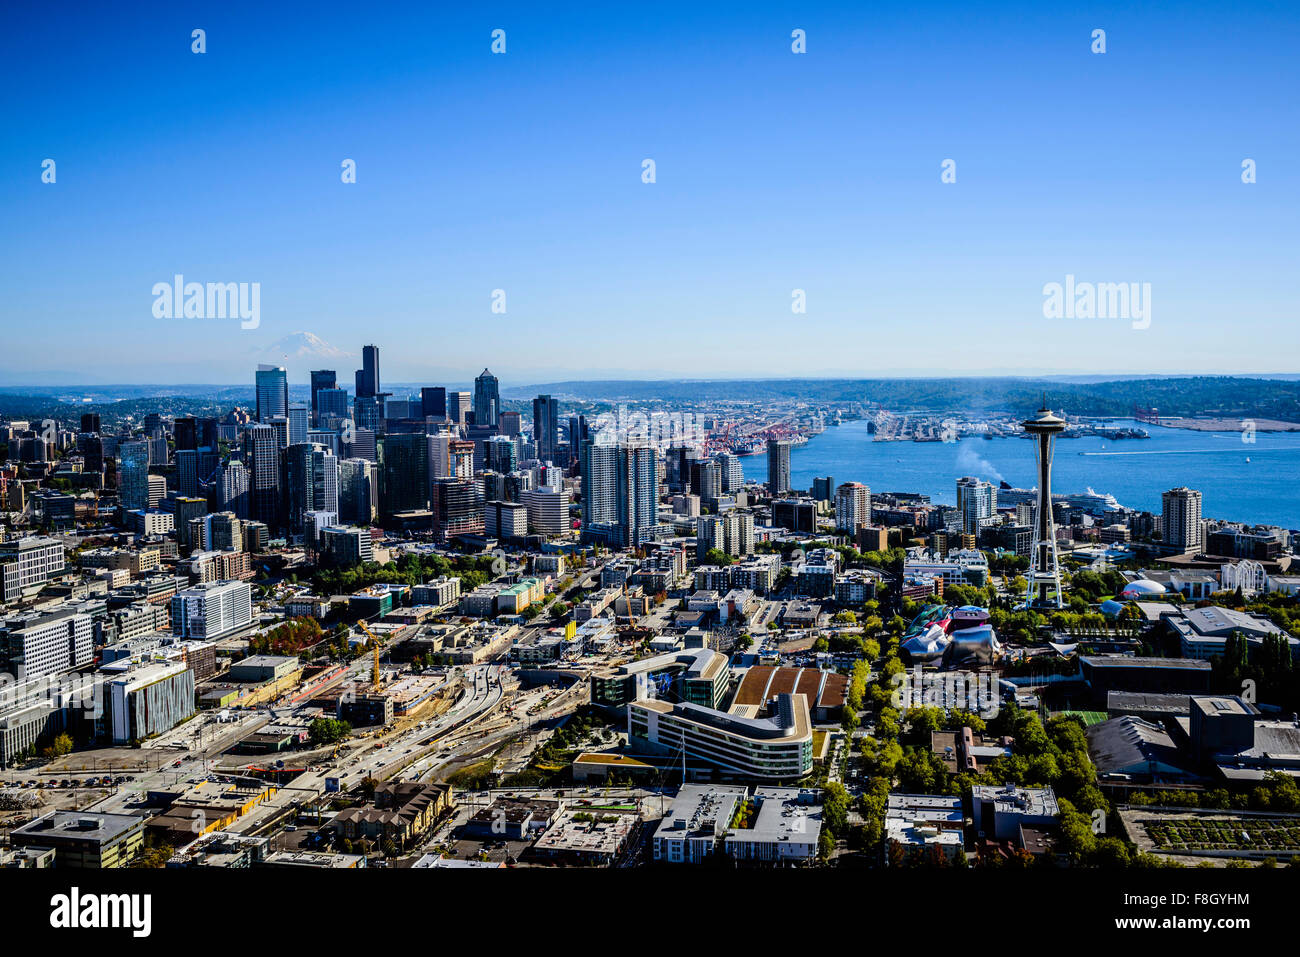 Aerial view of Seattle cityscape, Washington, United States - Stock Image